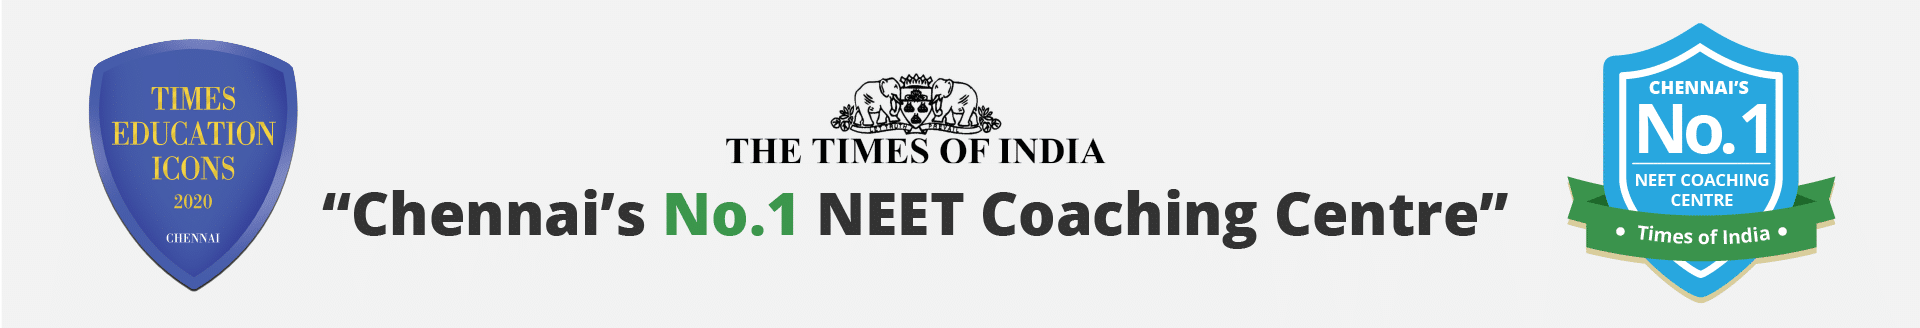 NEET Achievers Course For 11th and 12th Std